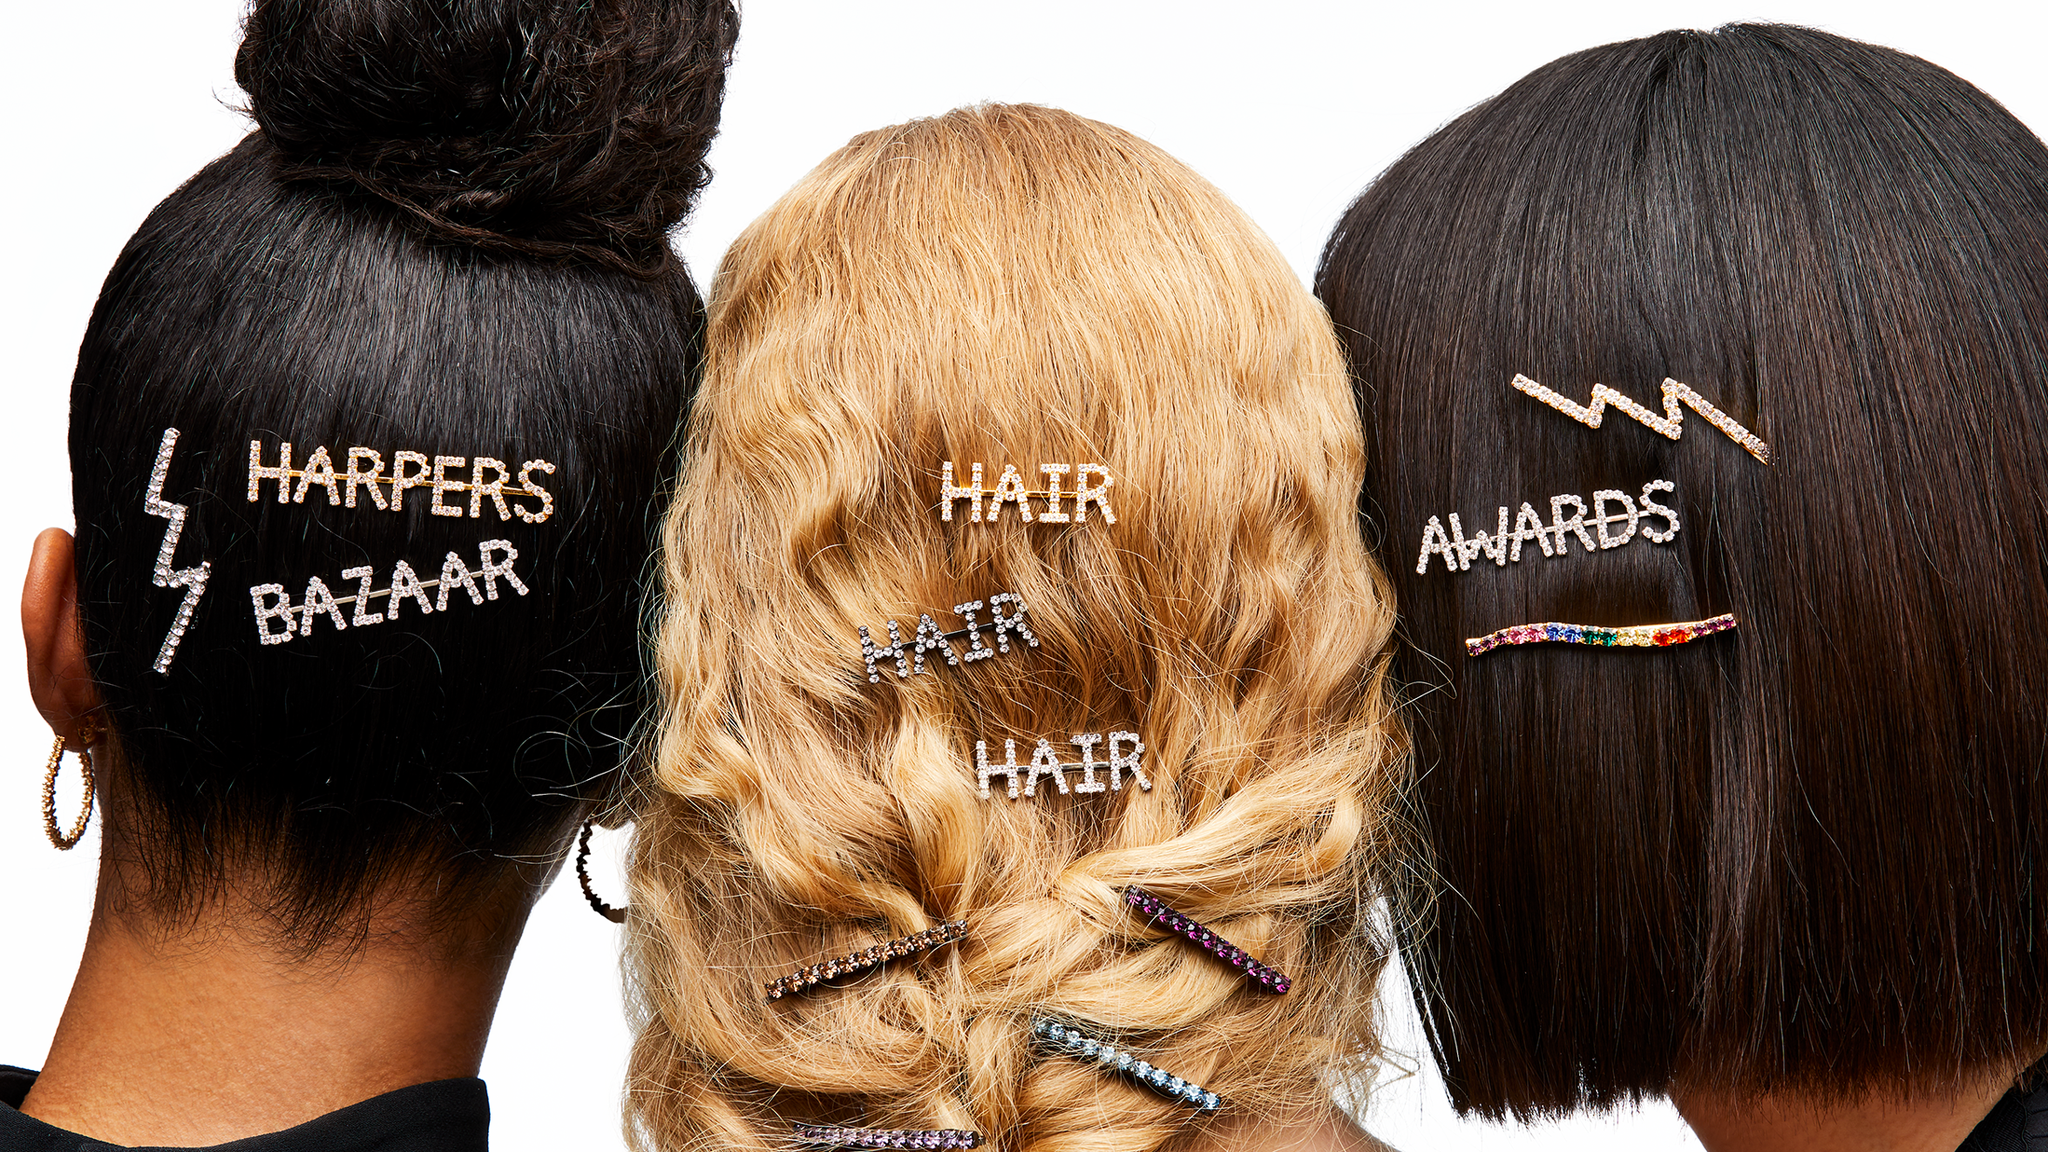 Hair Awards: The 35 Best Products of the Year